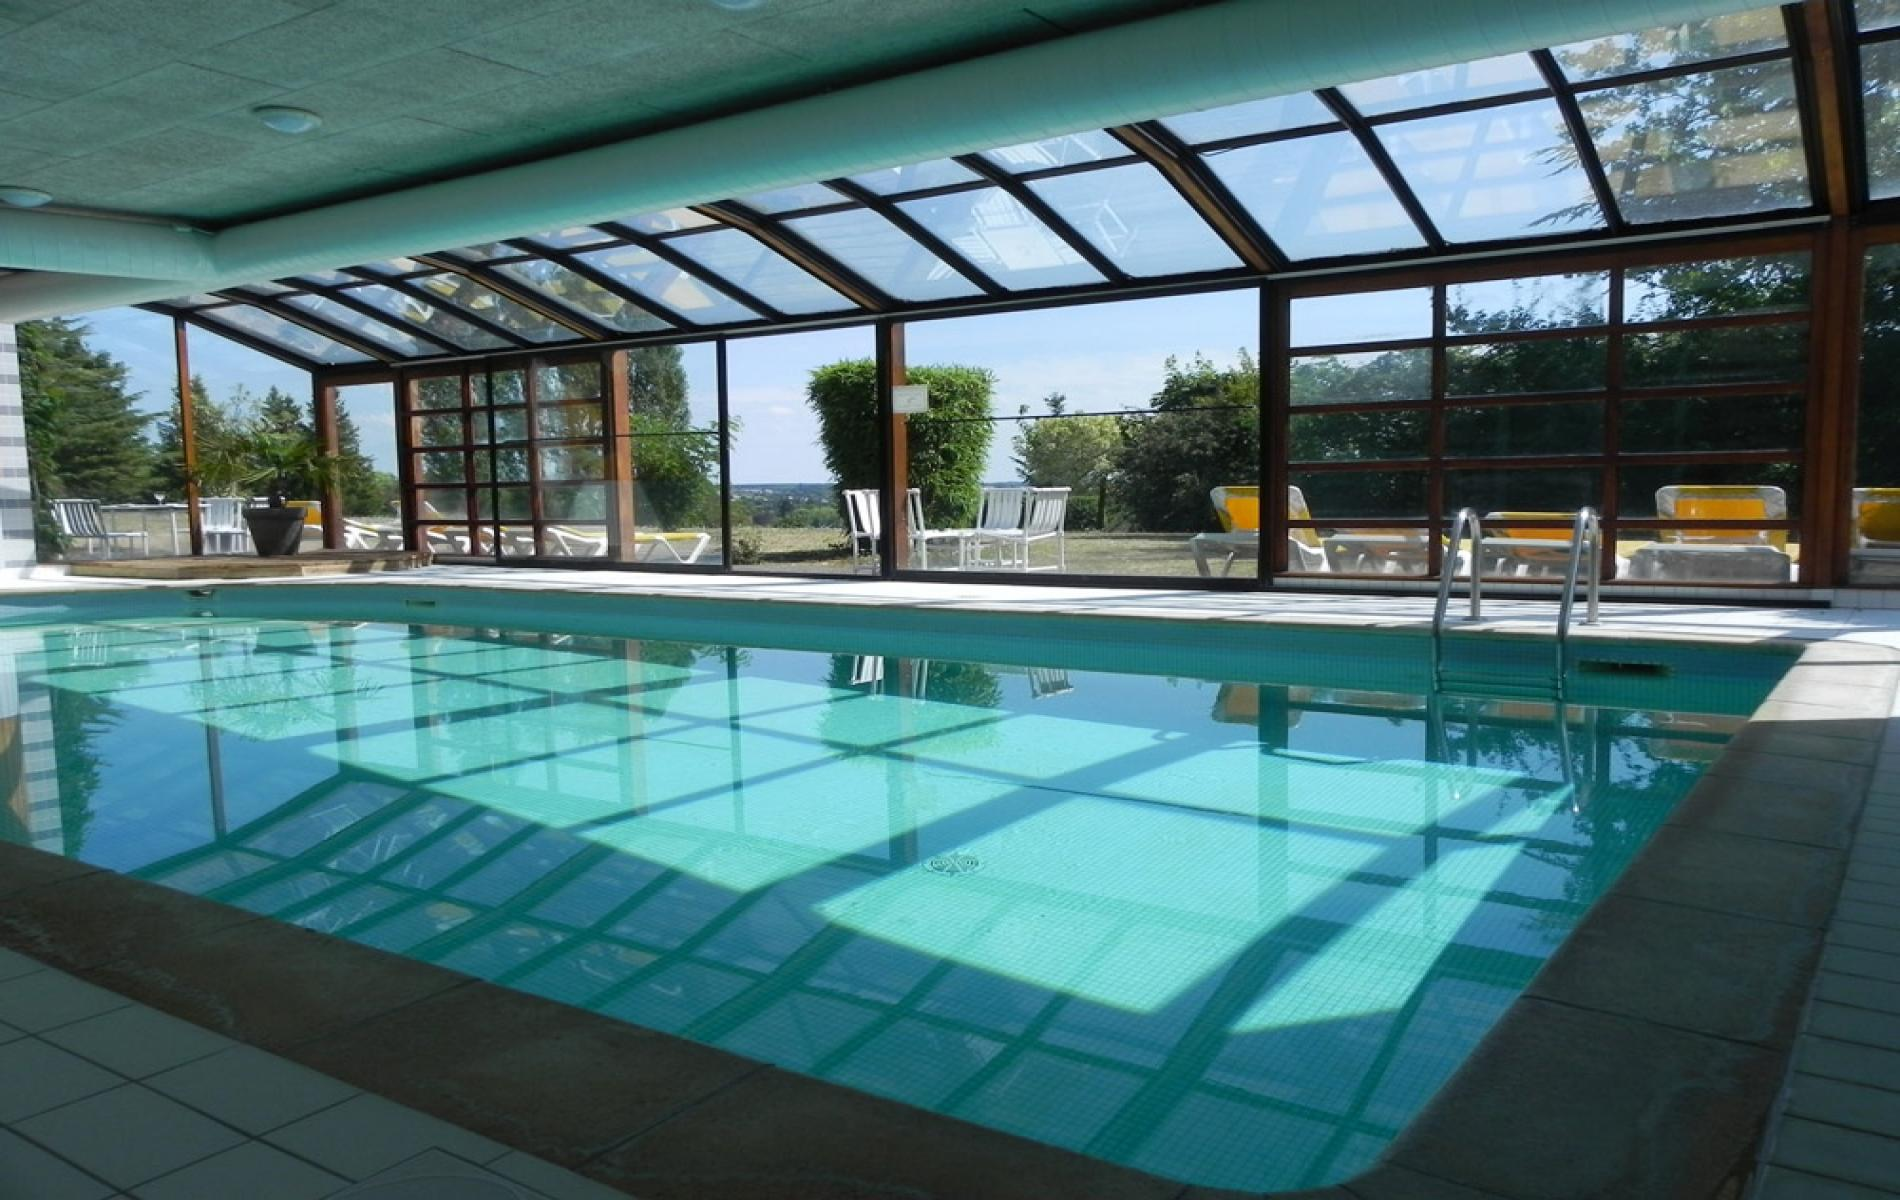 Hotel restaurant with swimming pool in loches touraine for Piscine georges vallerey